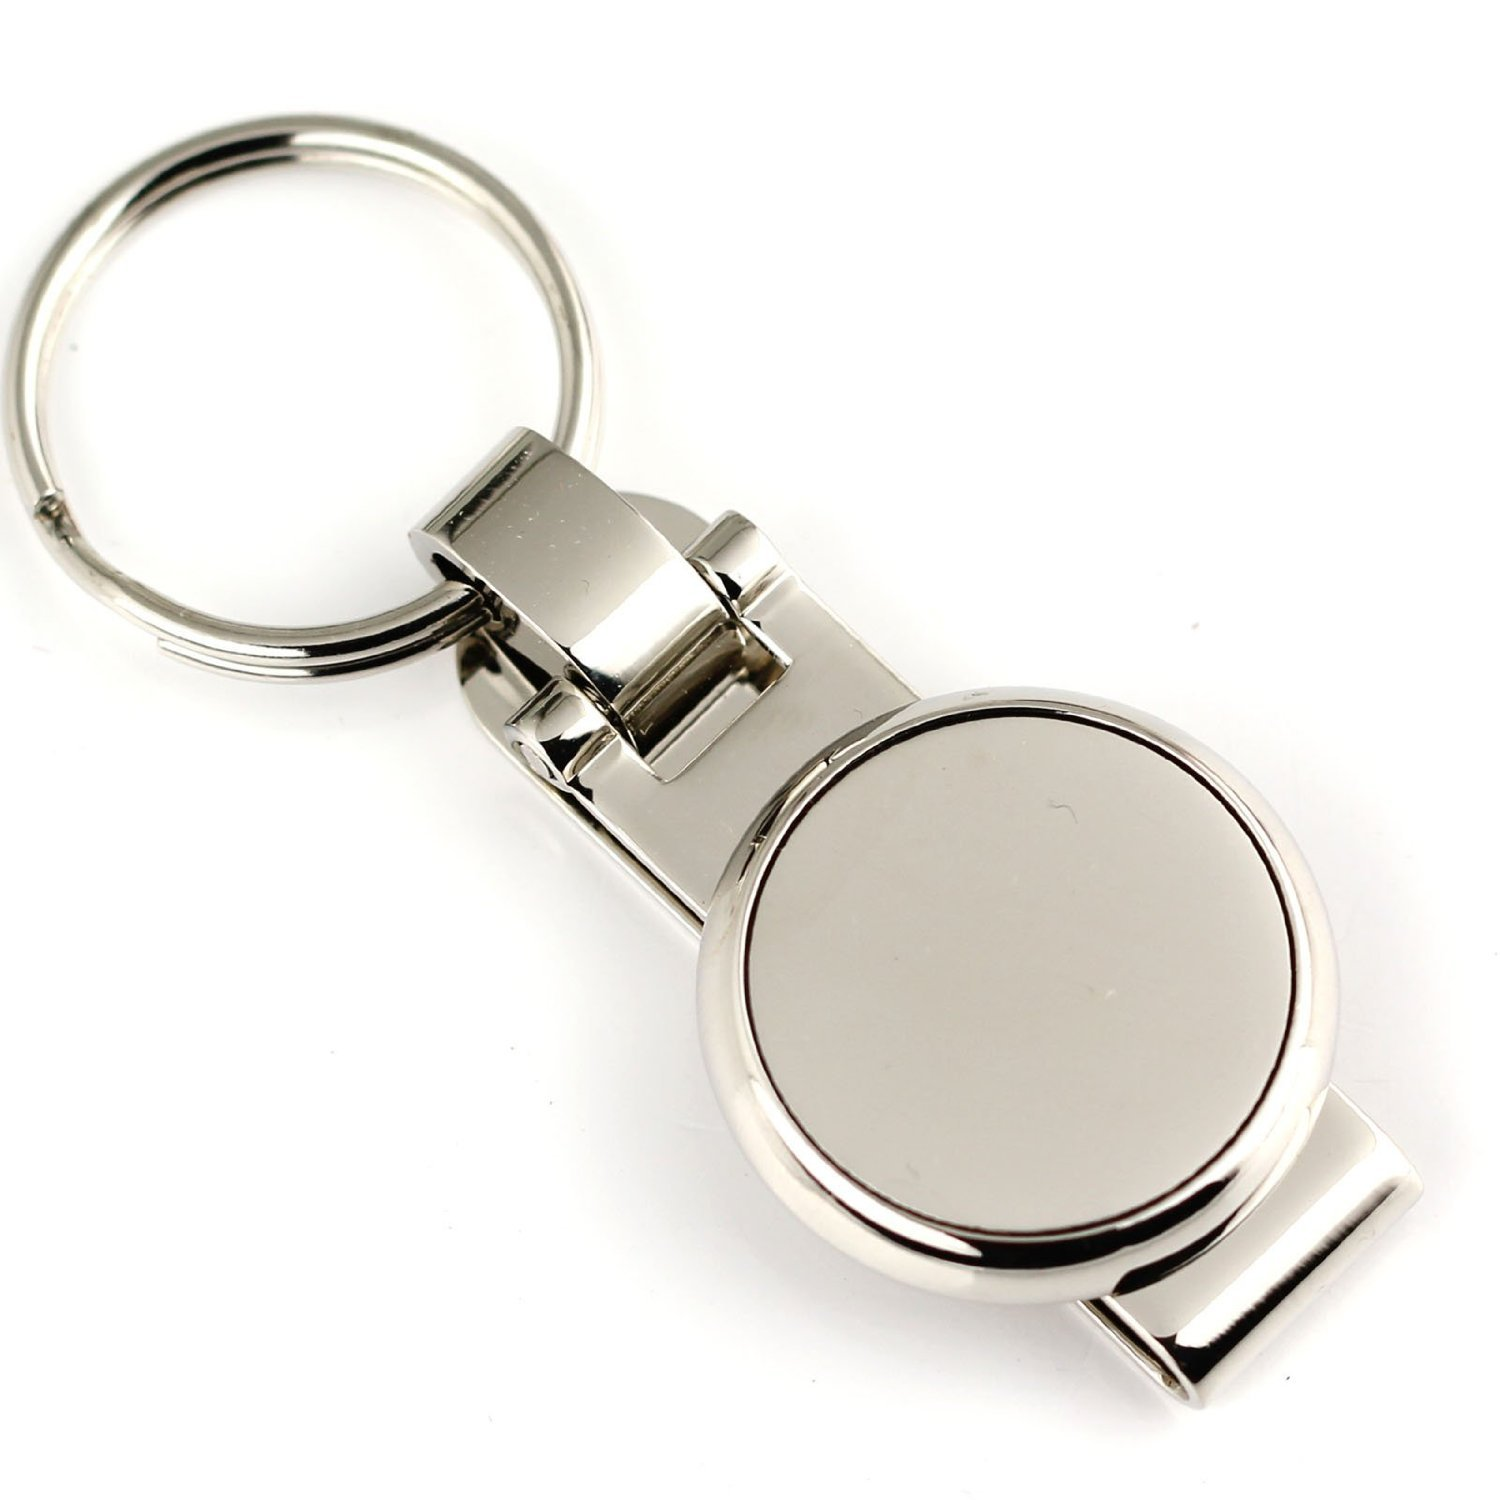 maycom Polished Silver Pants Buckle Keychain Waist Belt Clip Hanging Double Loops Keyring Key Chain Ring Key Fob 84003